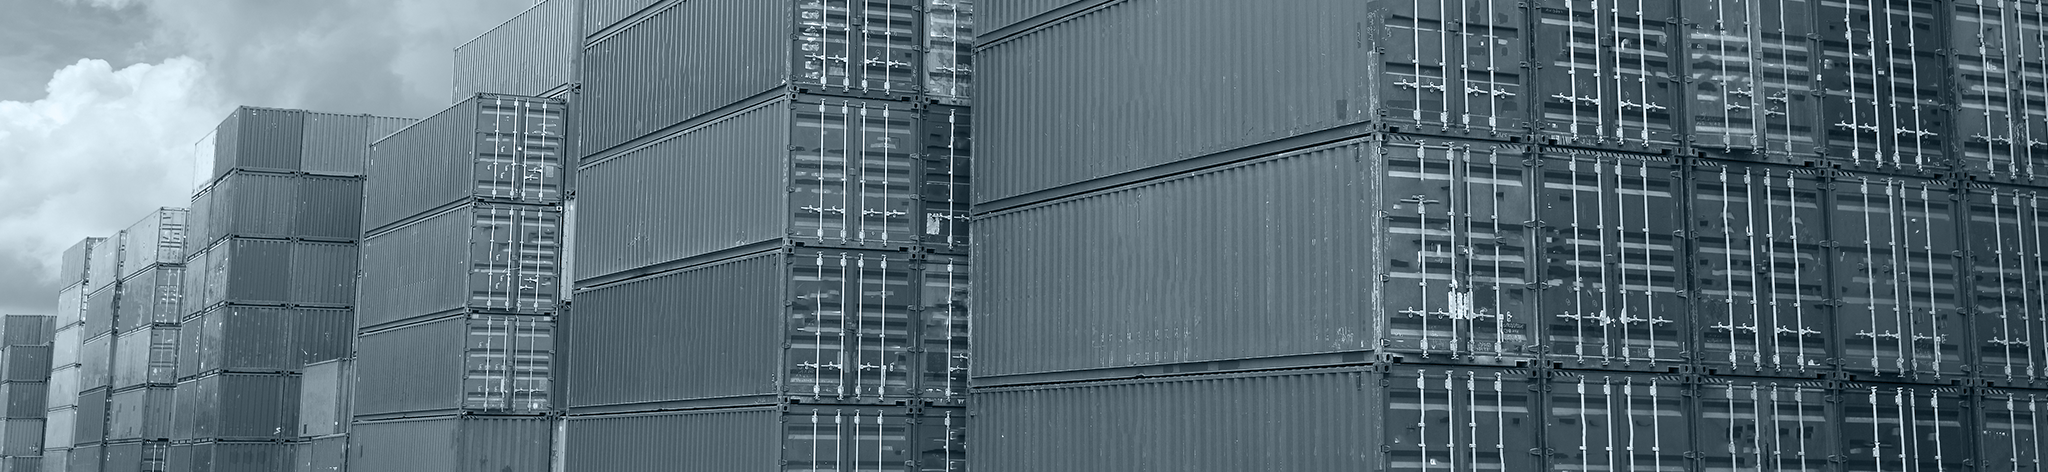 Container Providers International CPI Group